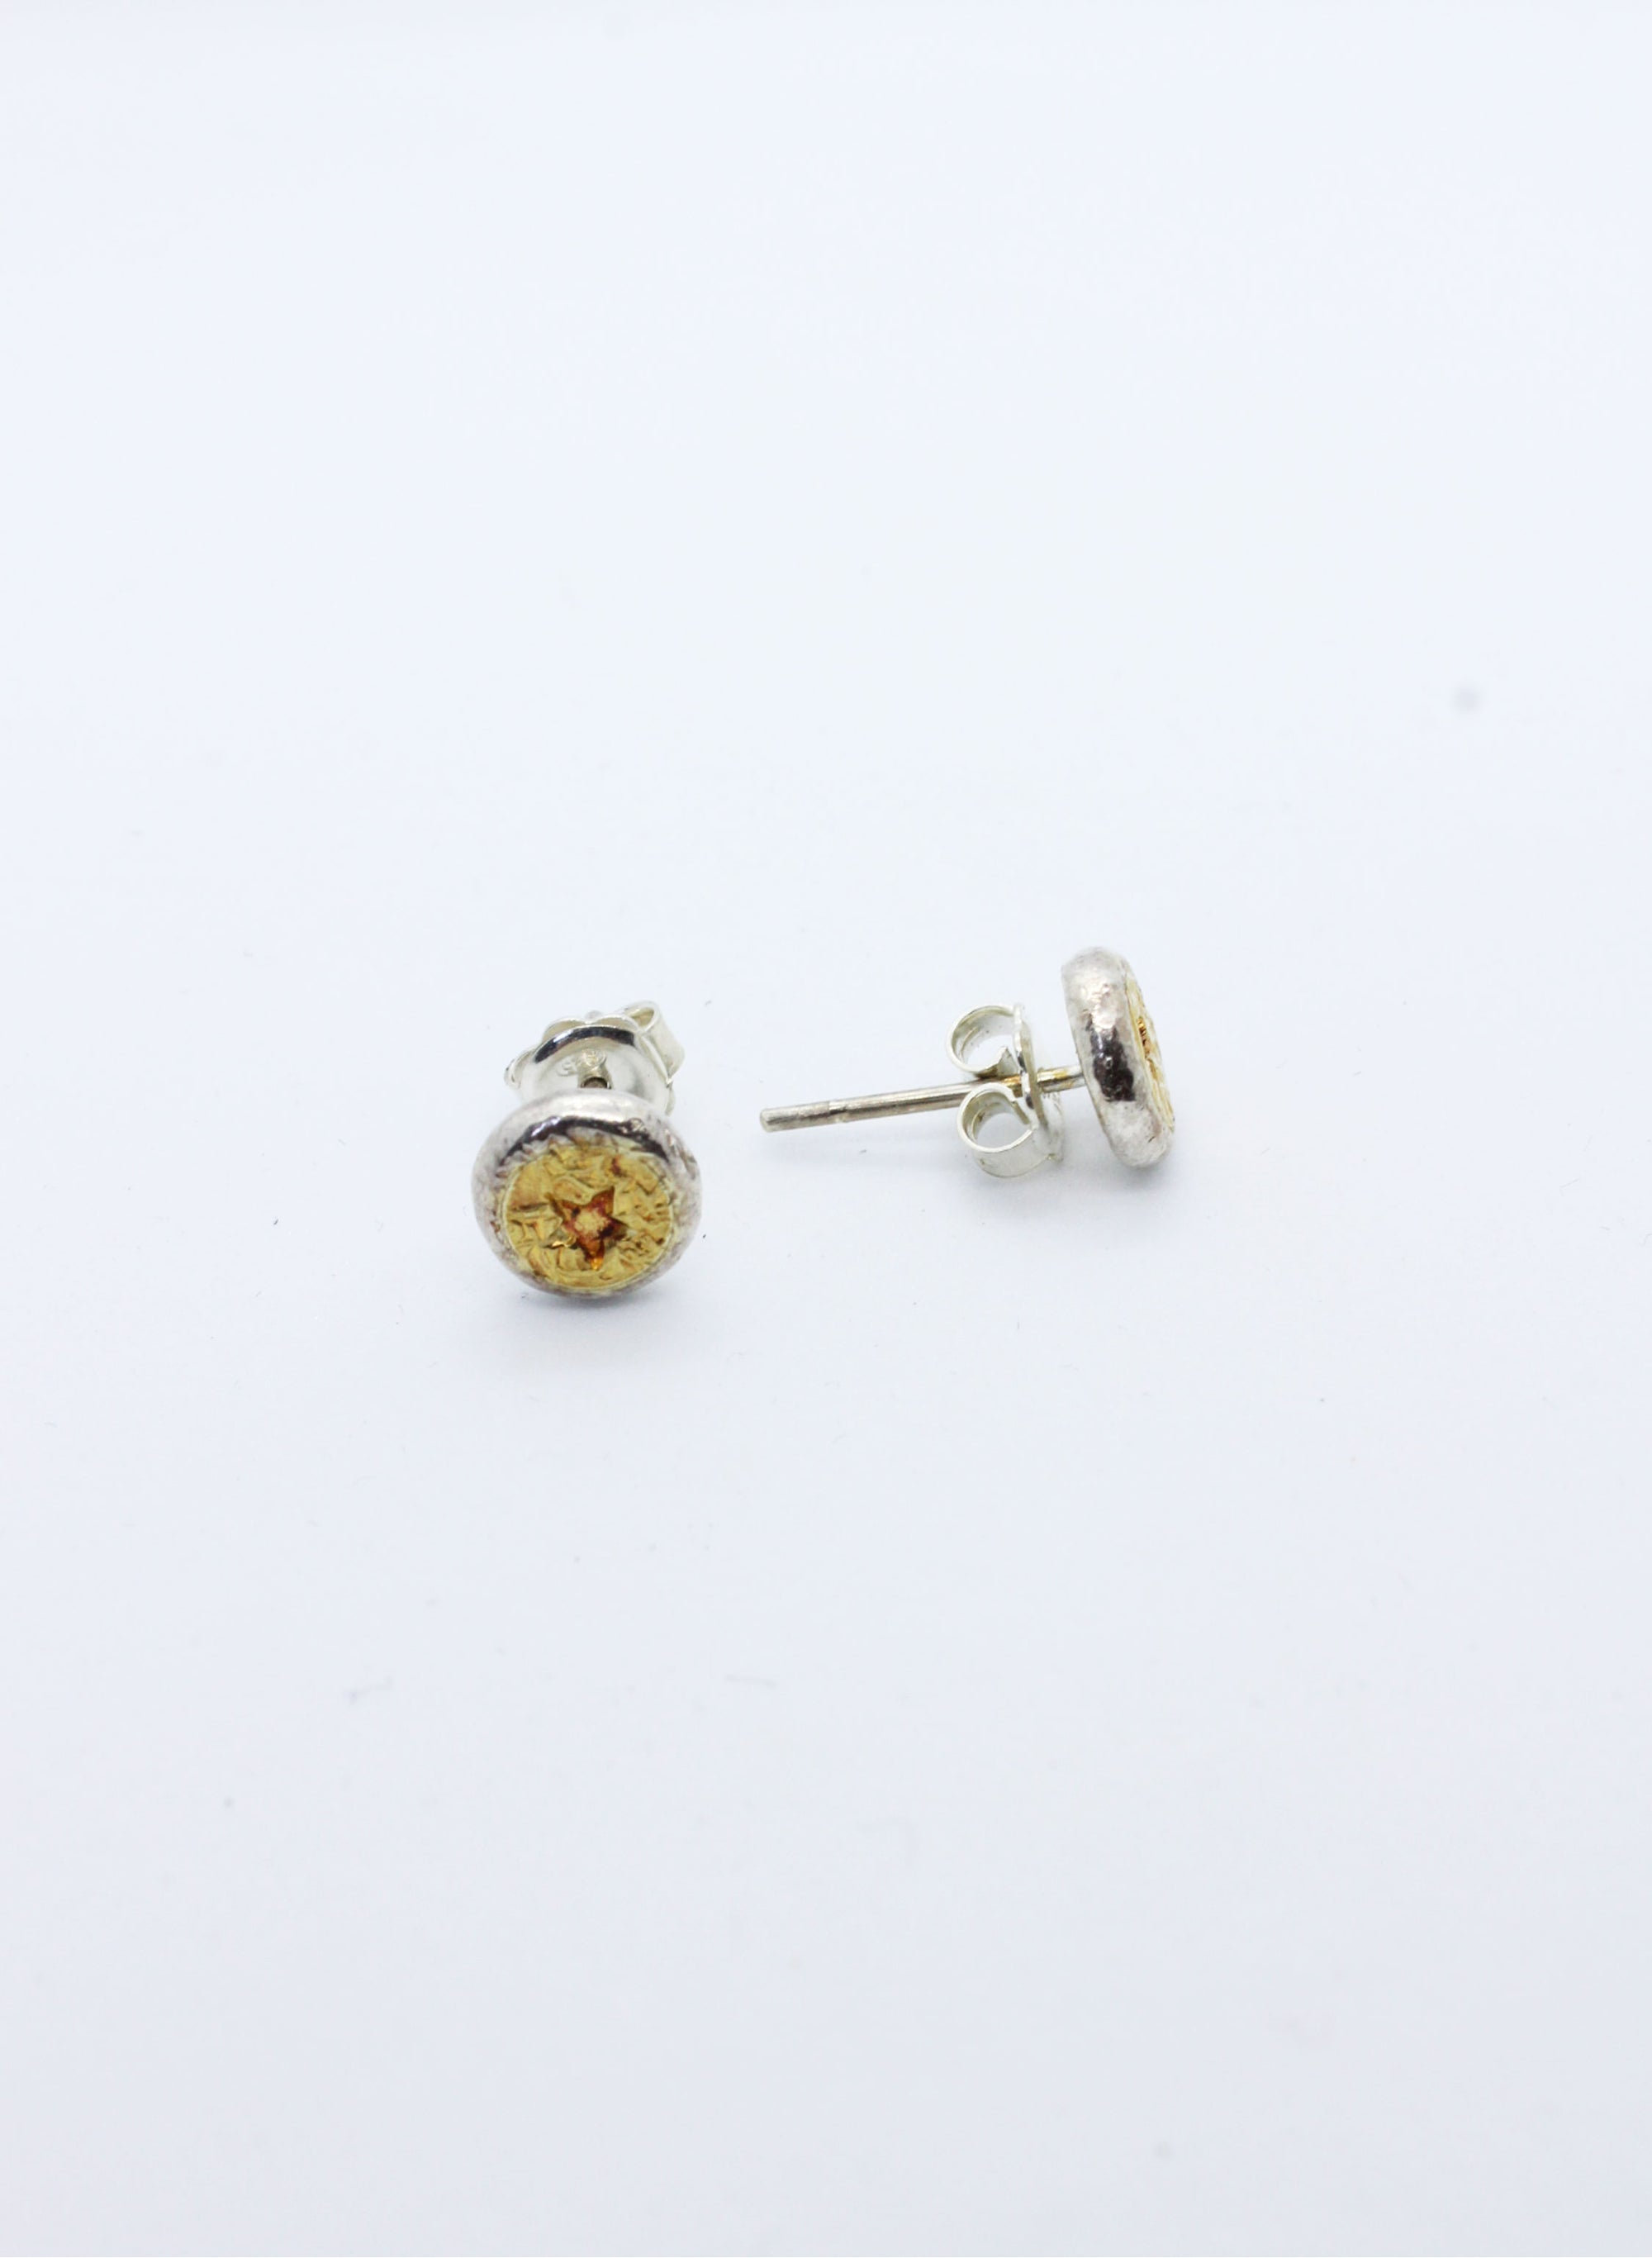 Star and Texture Stud earrings